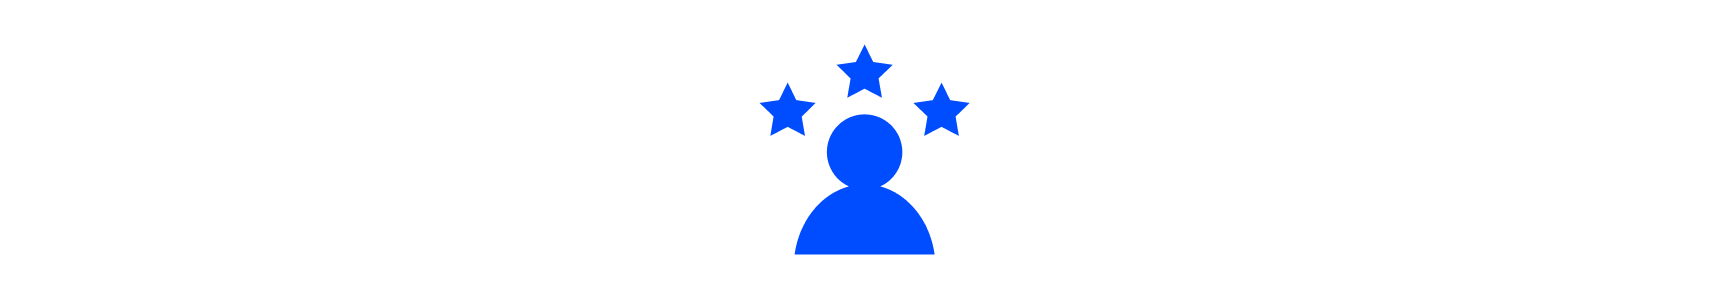 Human figure with star icons around them